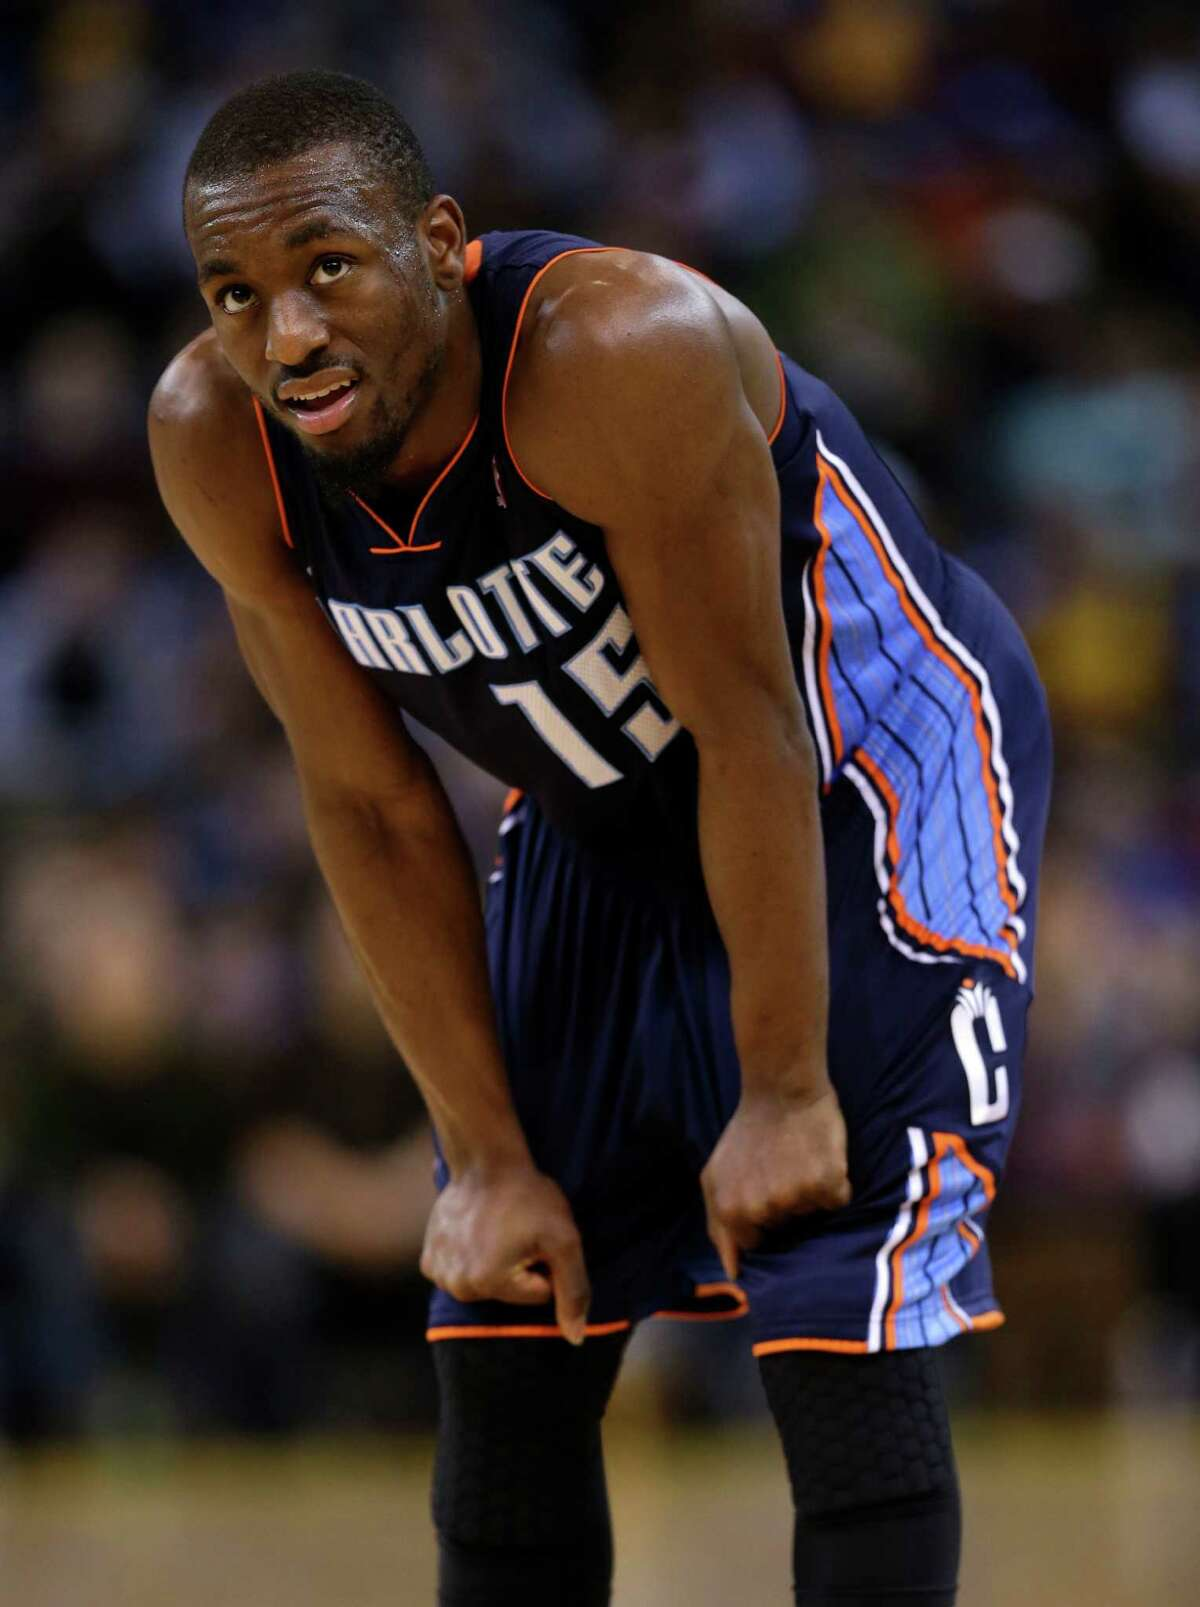 Charlotte Bobcats point guard Kemba Walker (15) in action against the Golden State Warriors in an NBA basketball game in Oakland, Calif., Friday, Dec. 21, 2012. (AP Photo/Marcio Jose Sanchez)